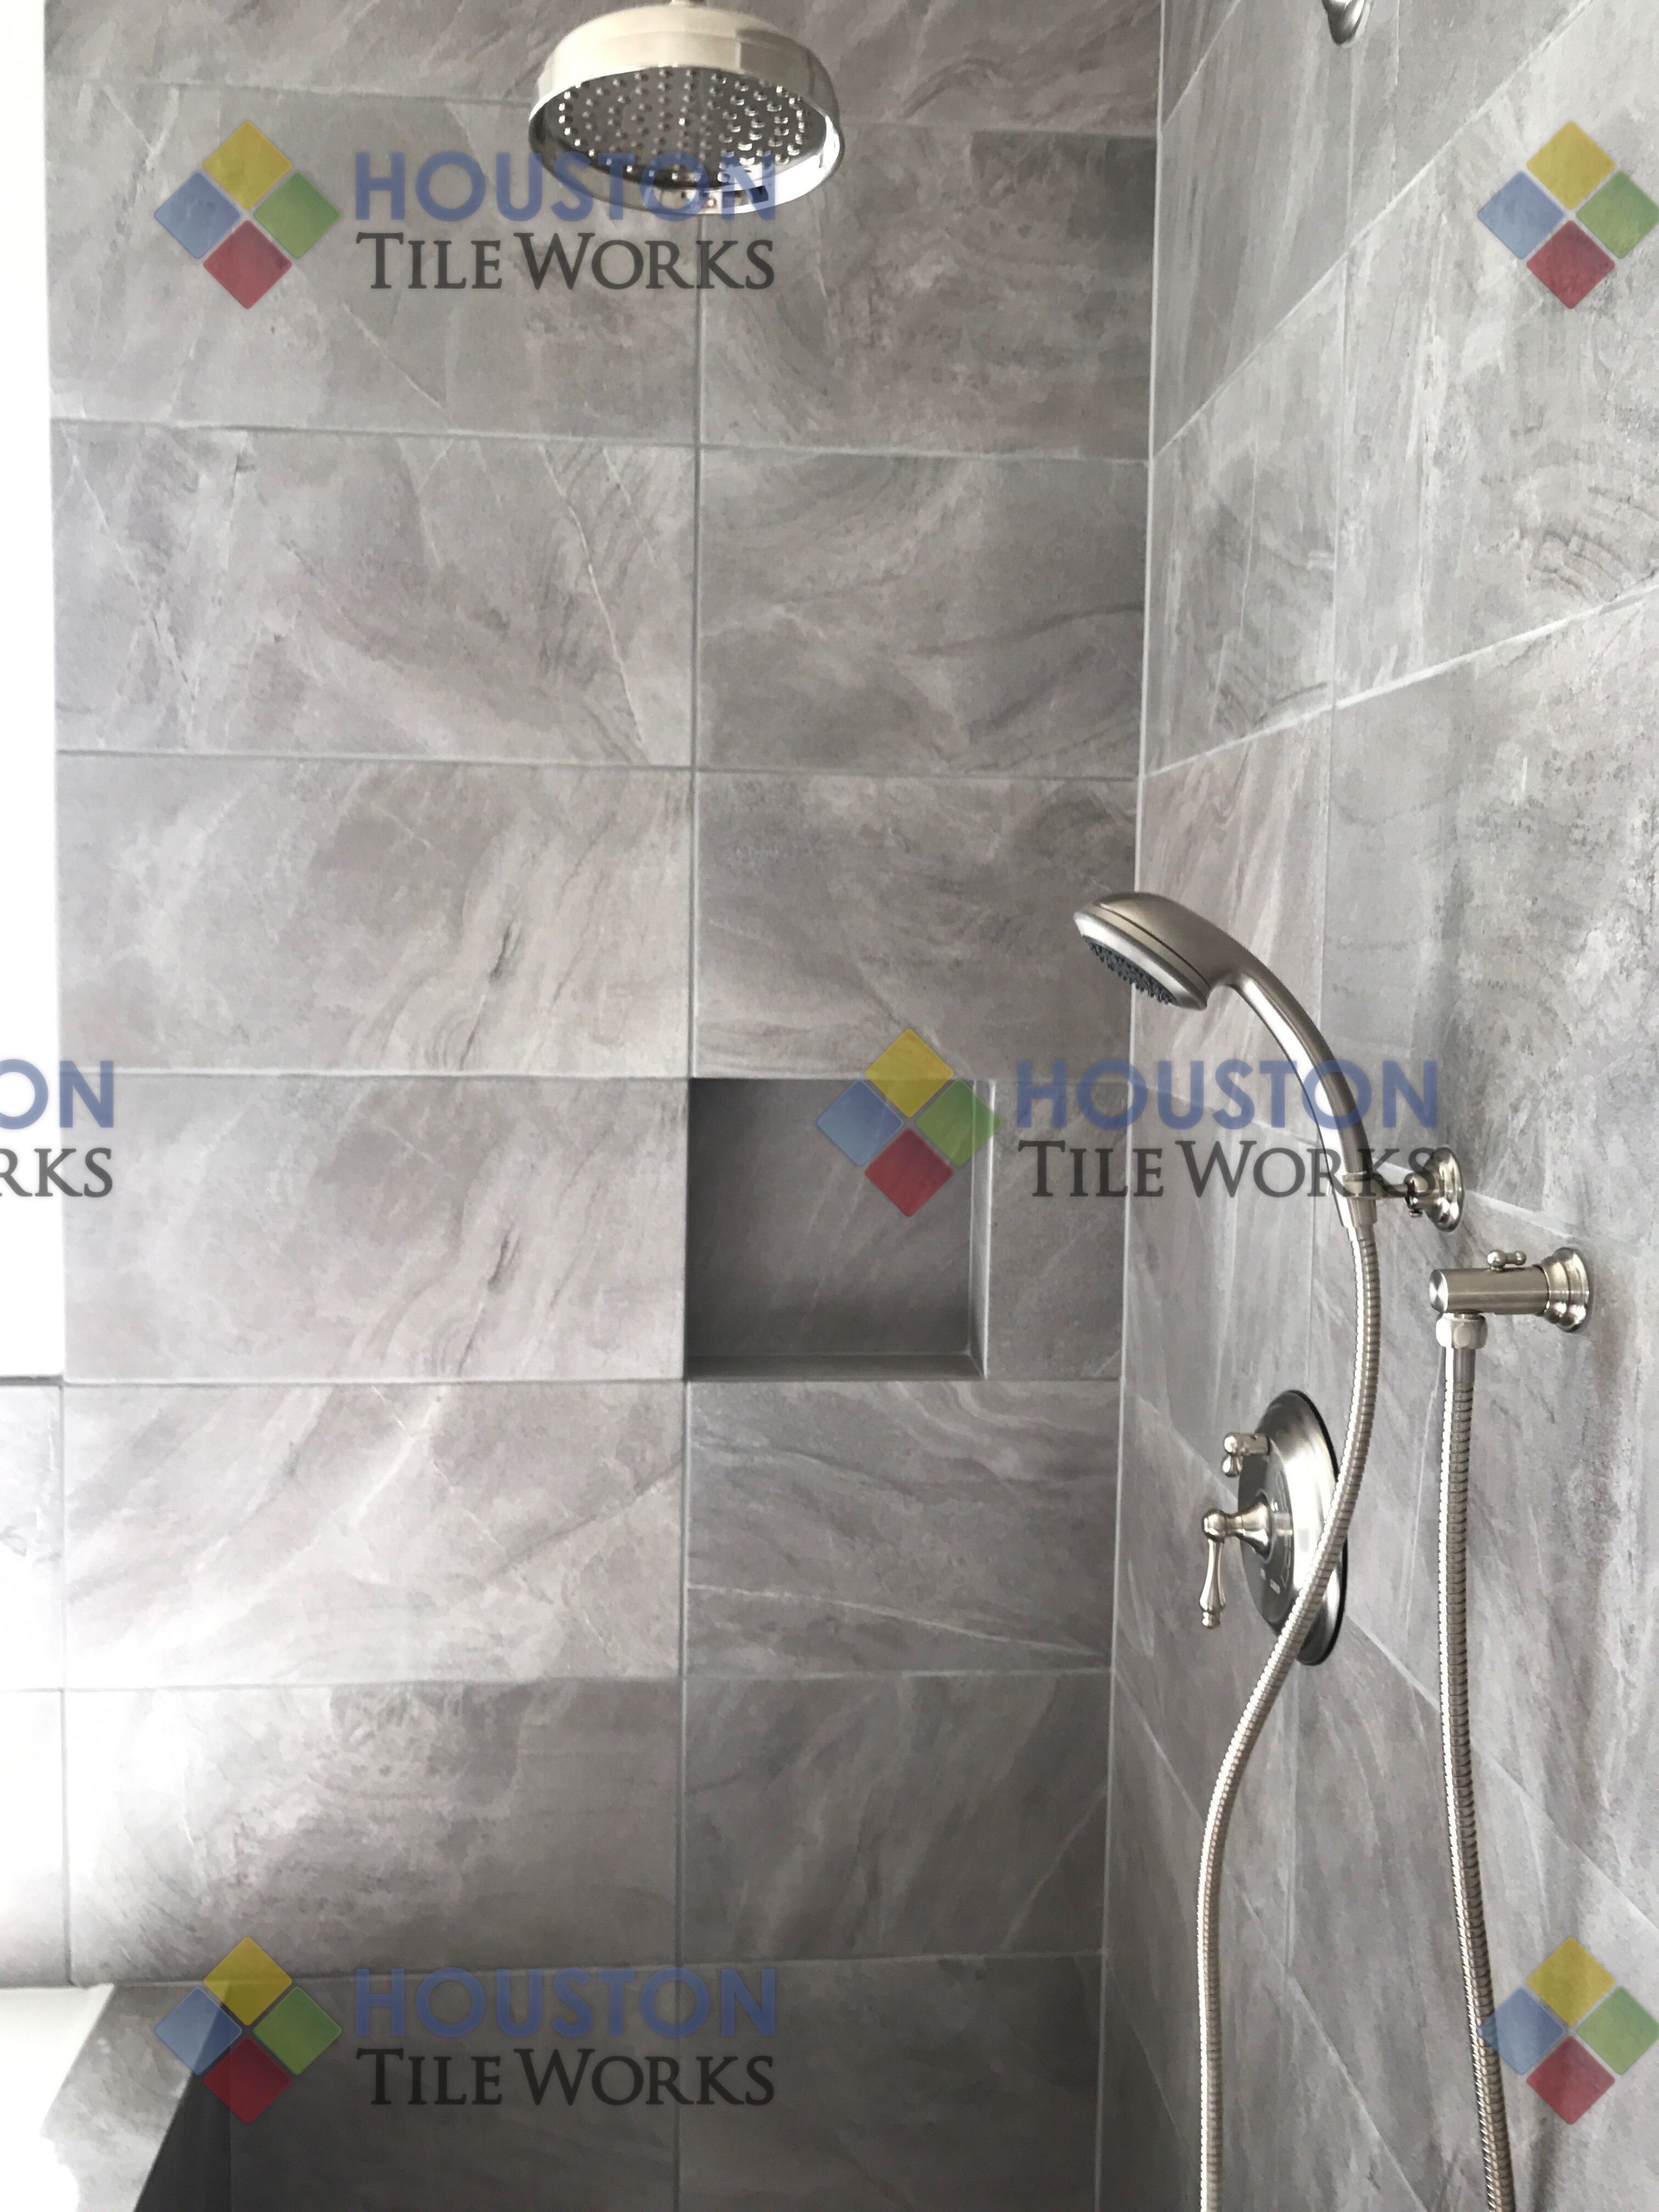 pinhouston tile works on nepal gray porcelain tile | pinterest